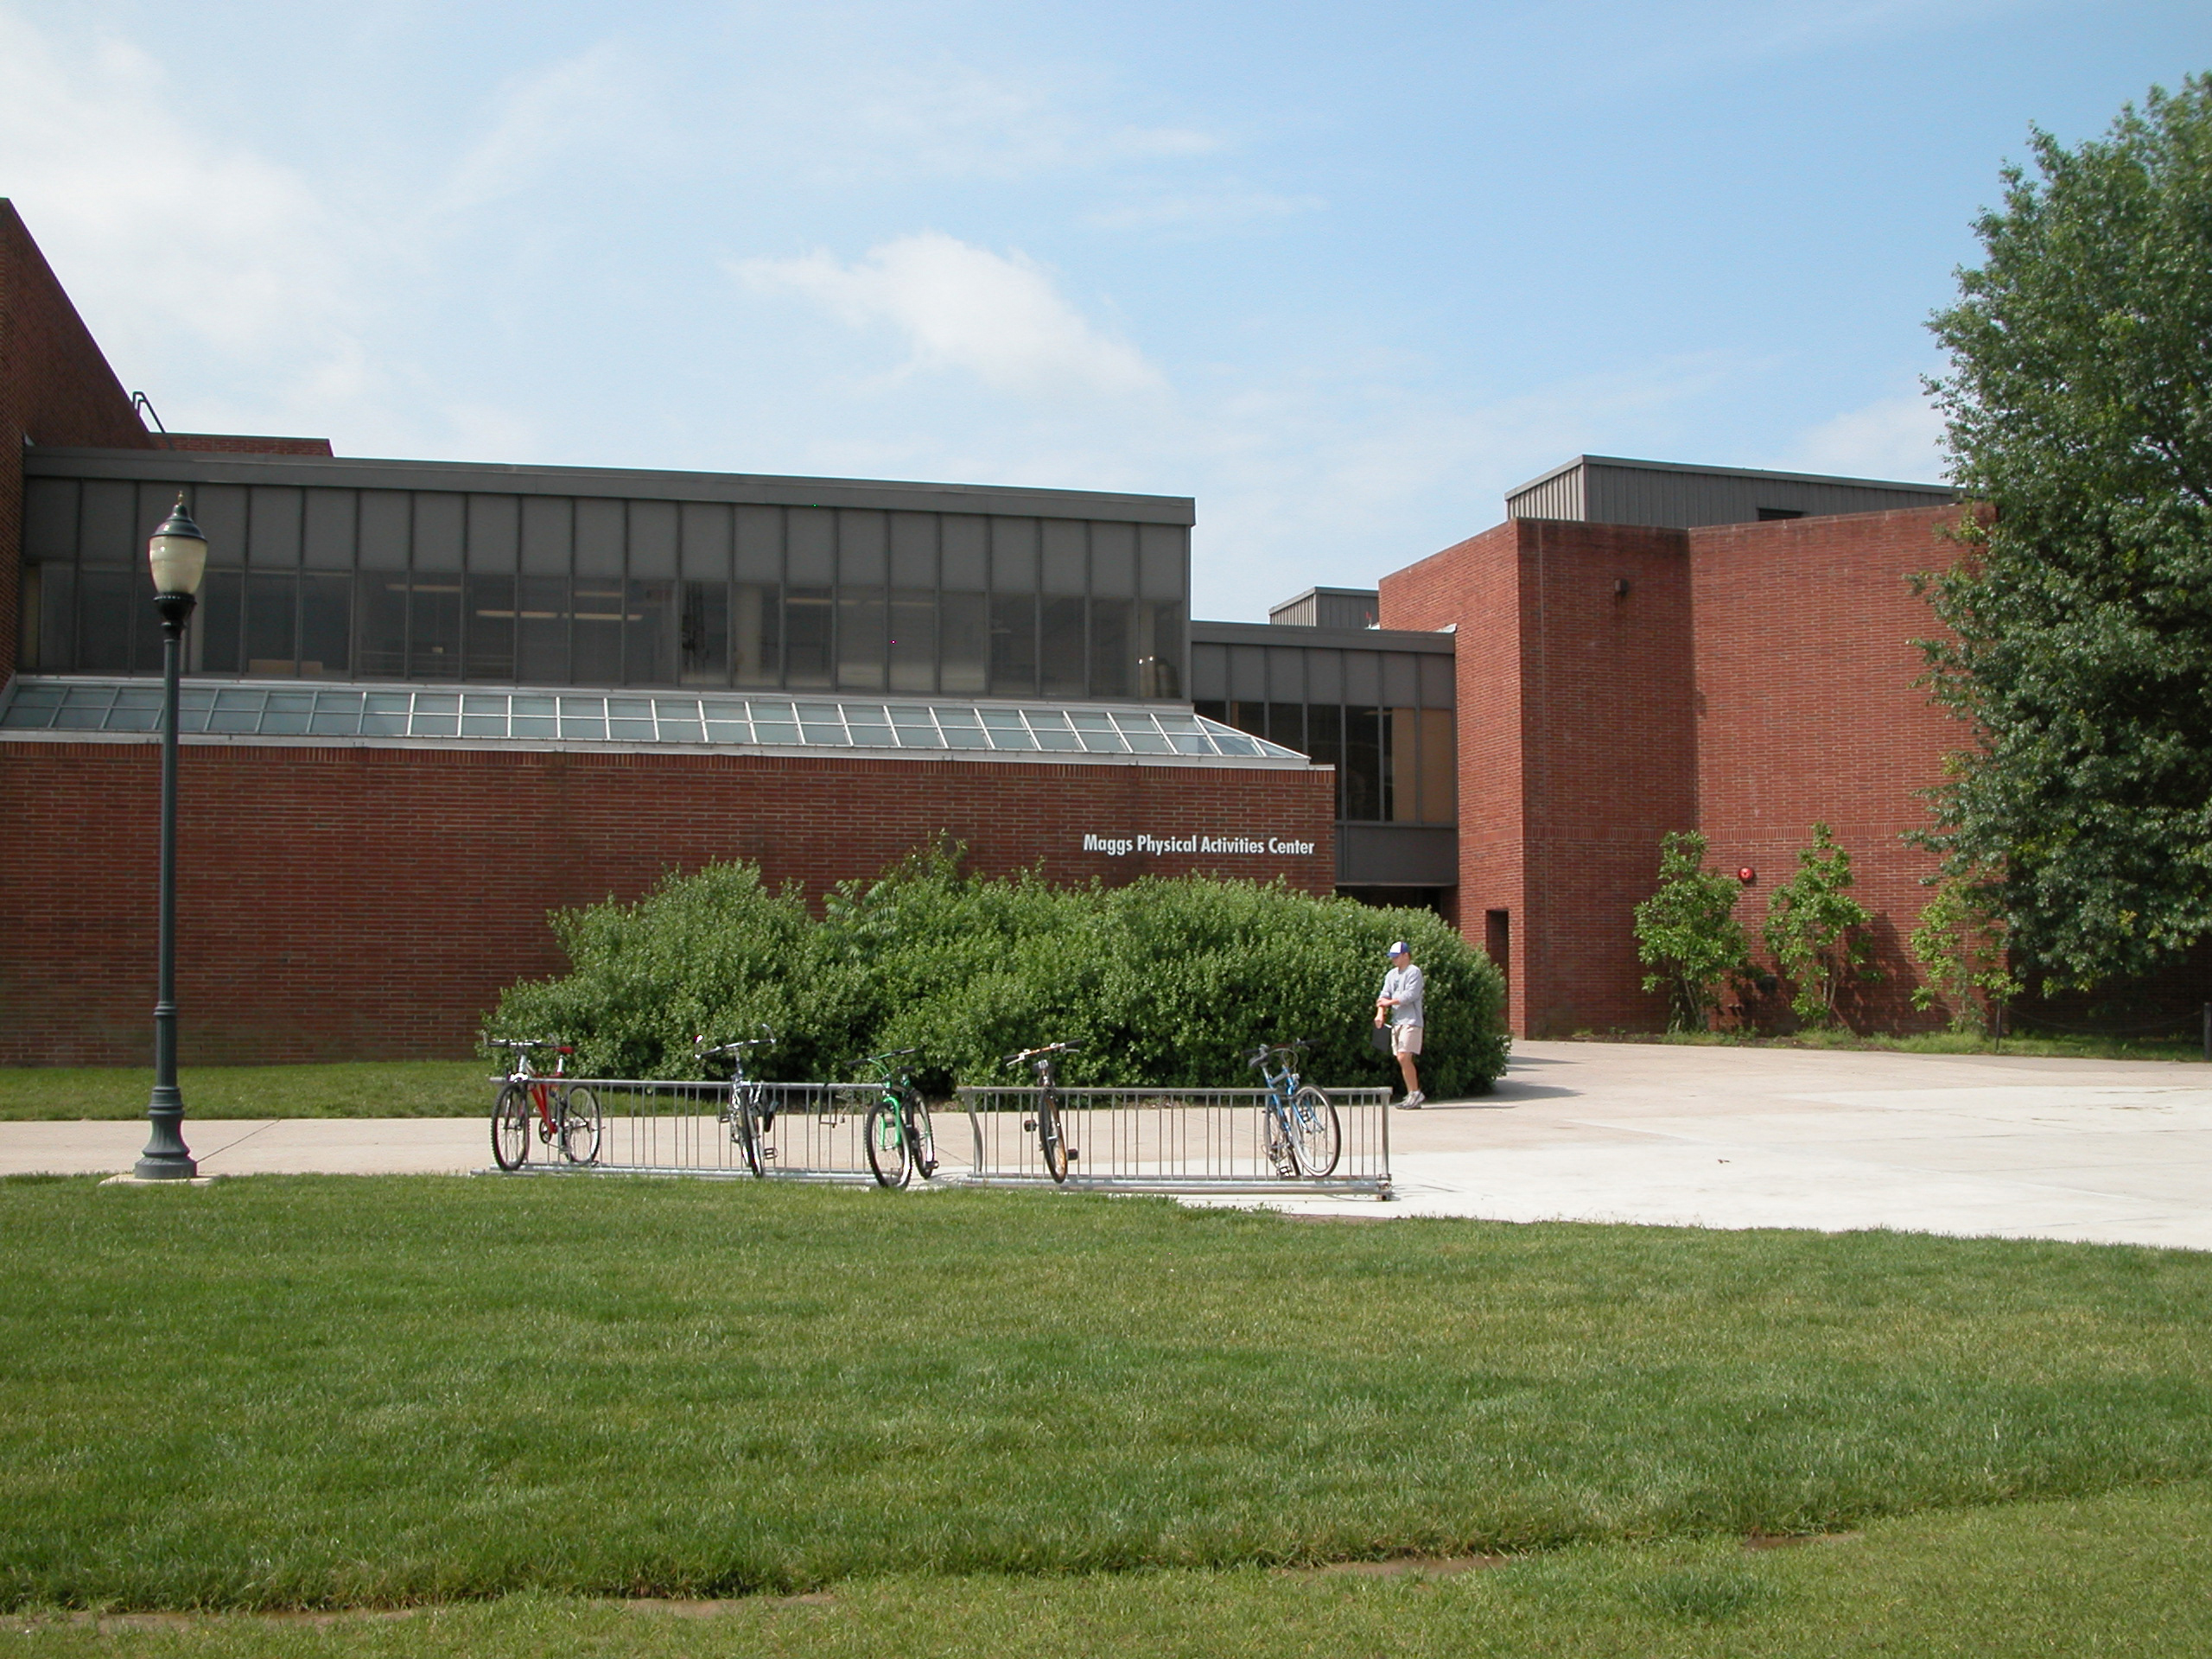 Maggs Physical Activities Center, 2004